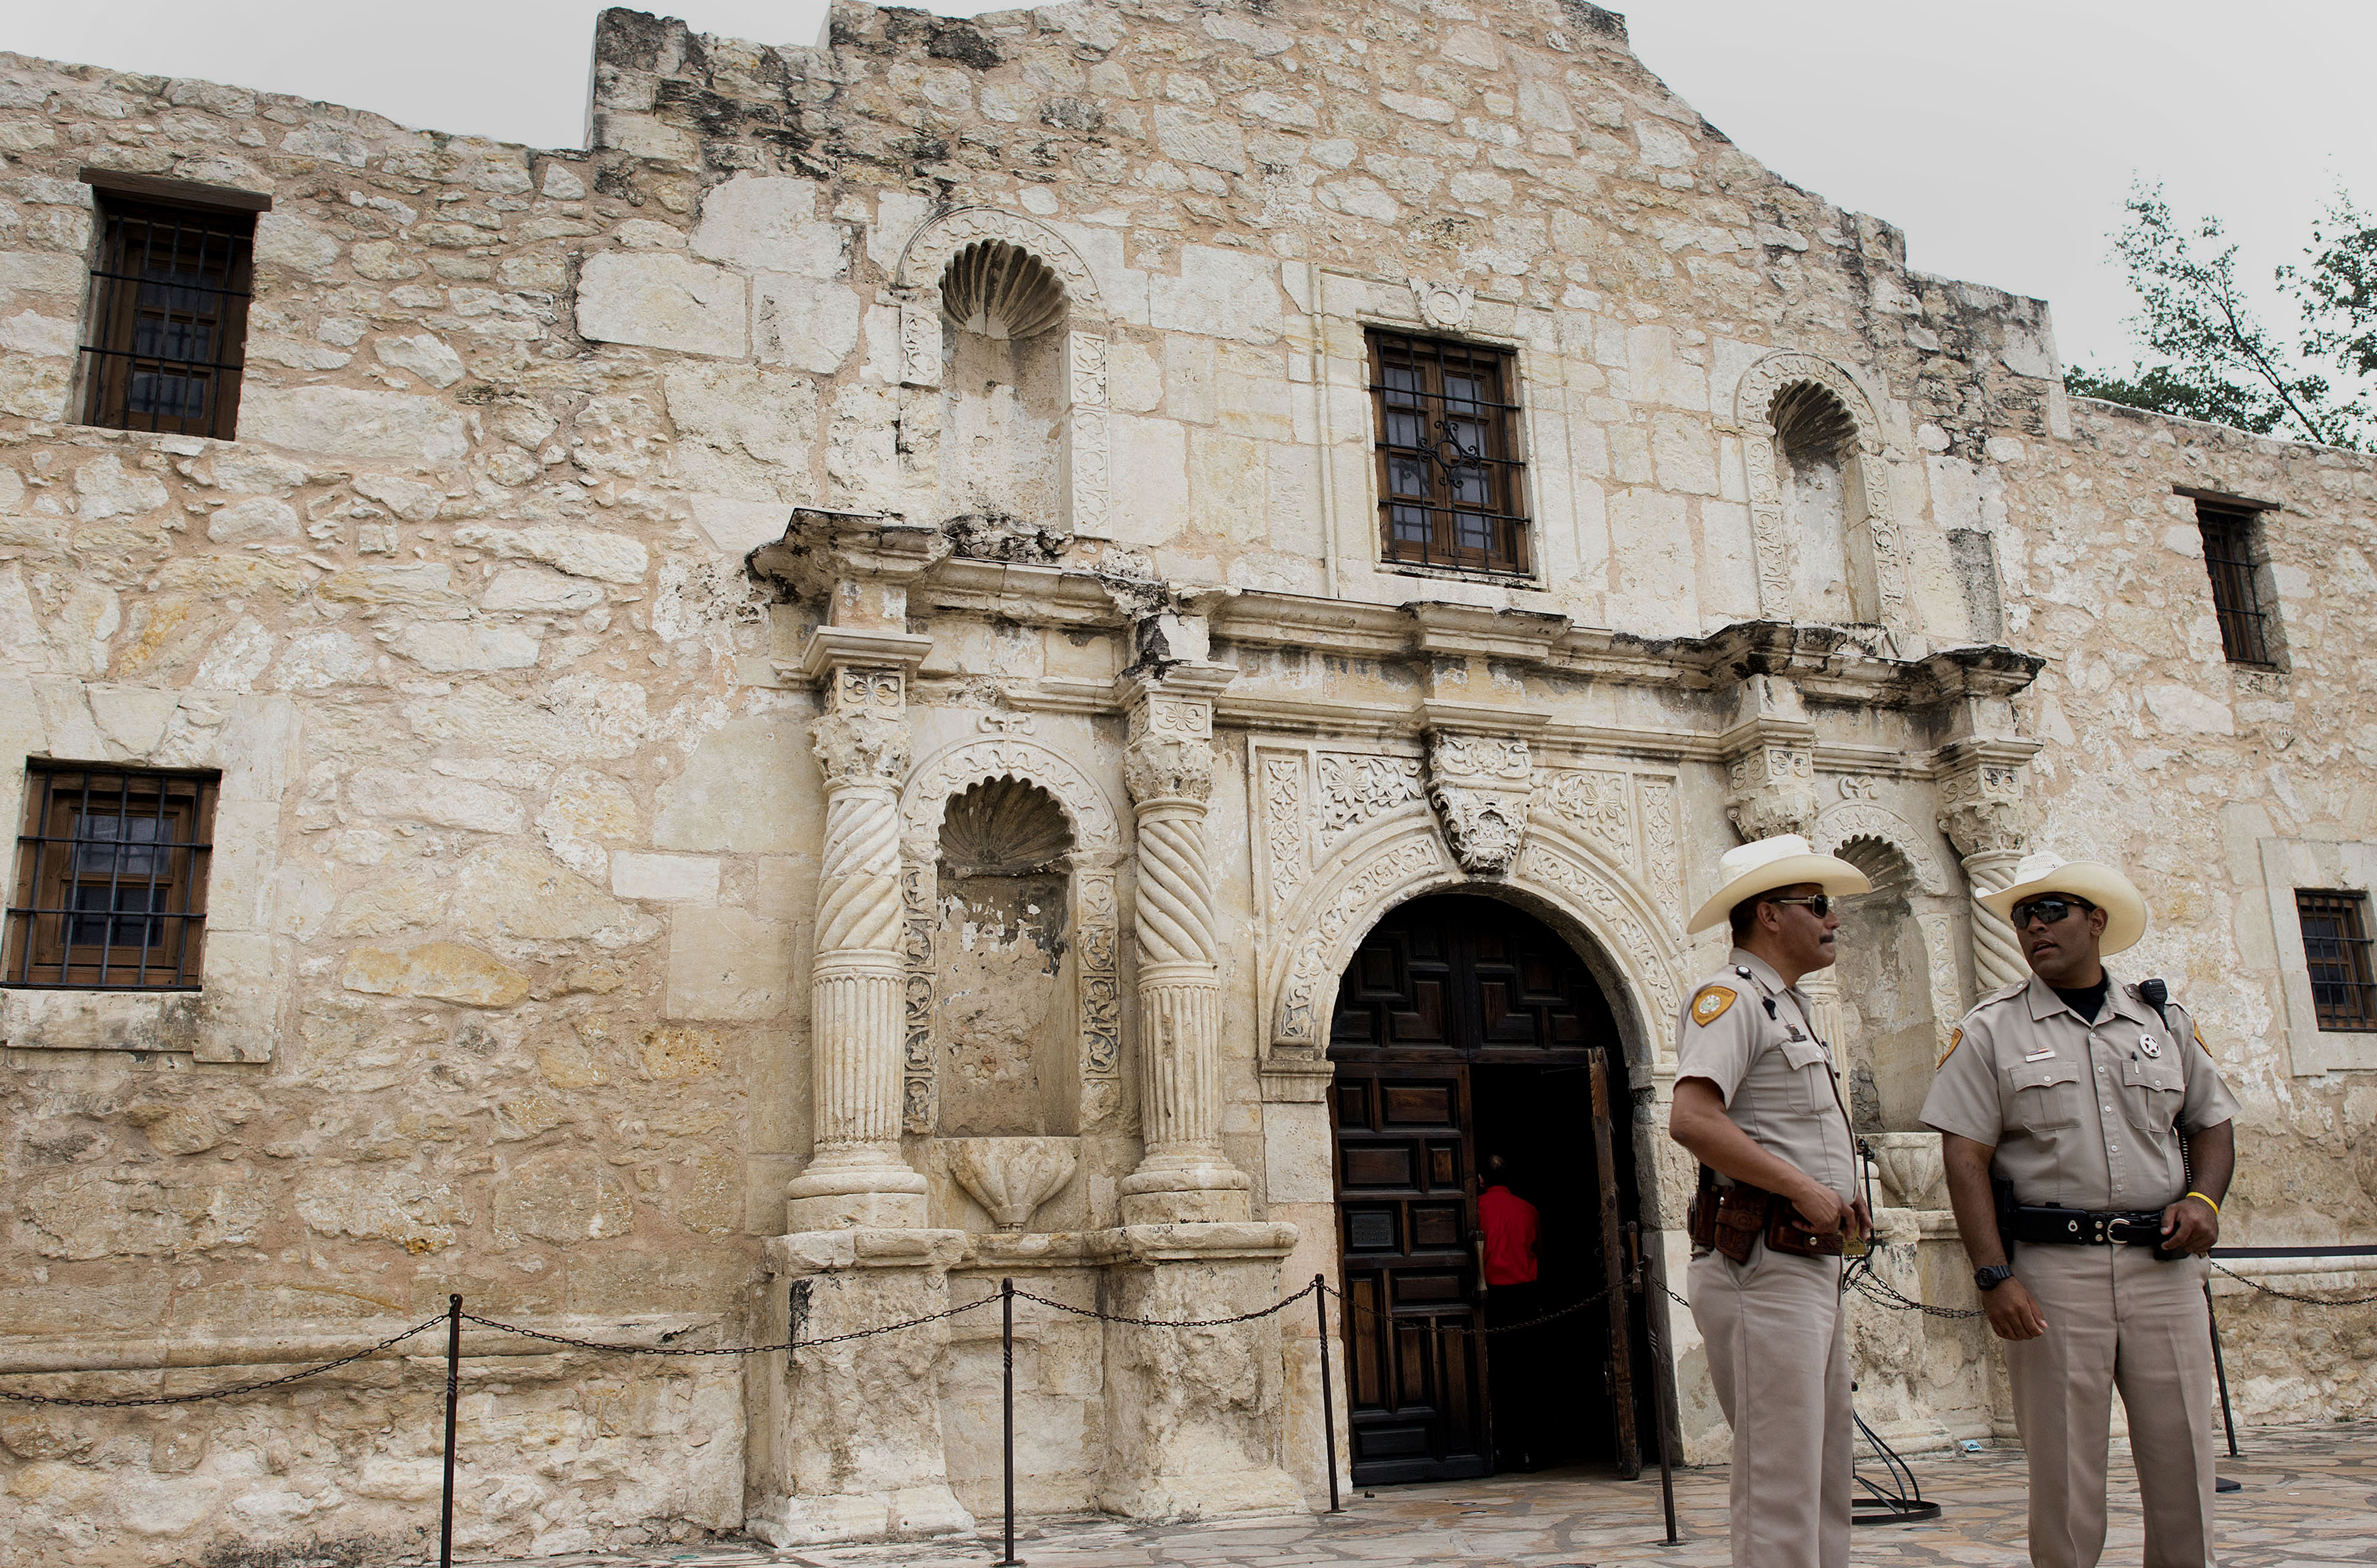 Security guards stand in front of the Alamo in downtown San Antonio, Texas, U.S., on Tuesday, June 3, 2014